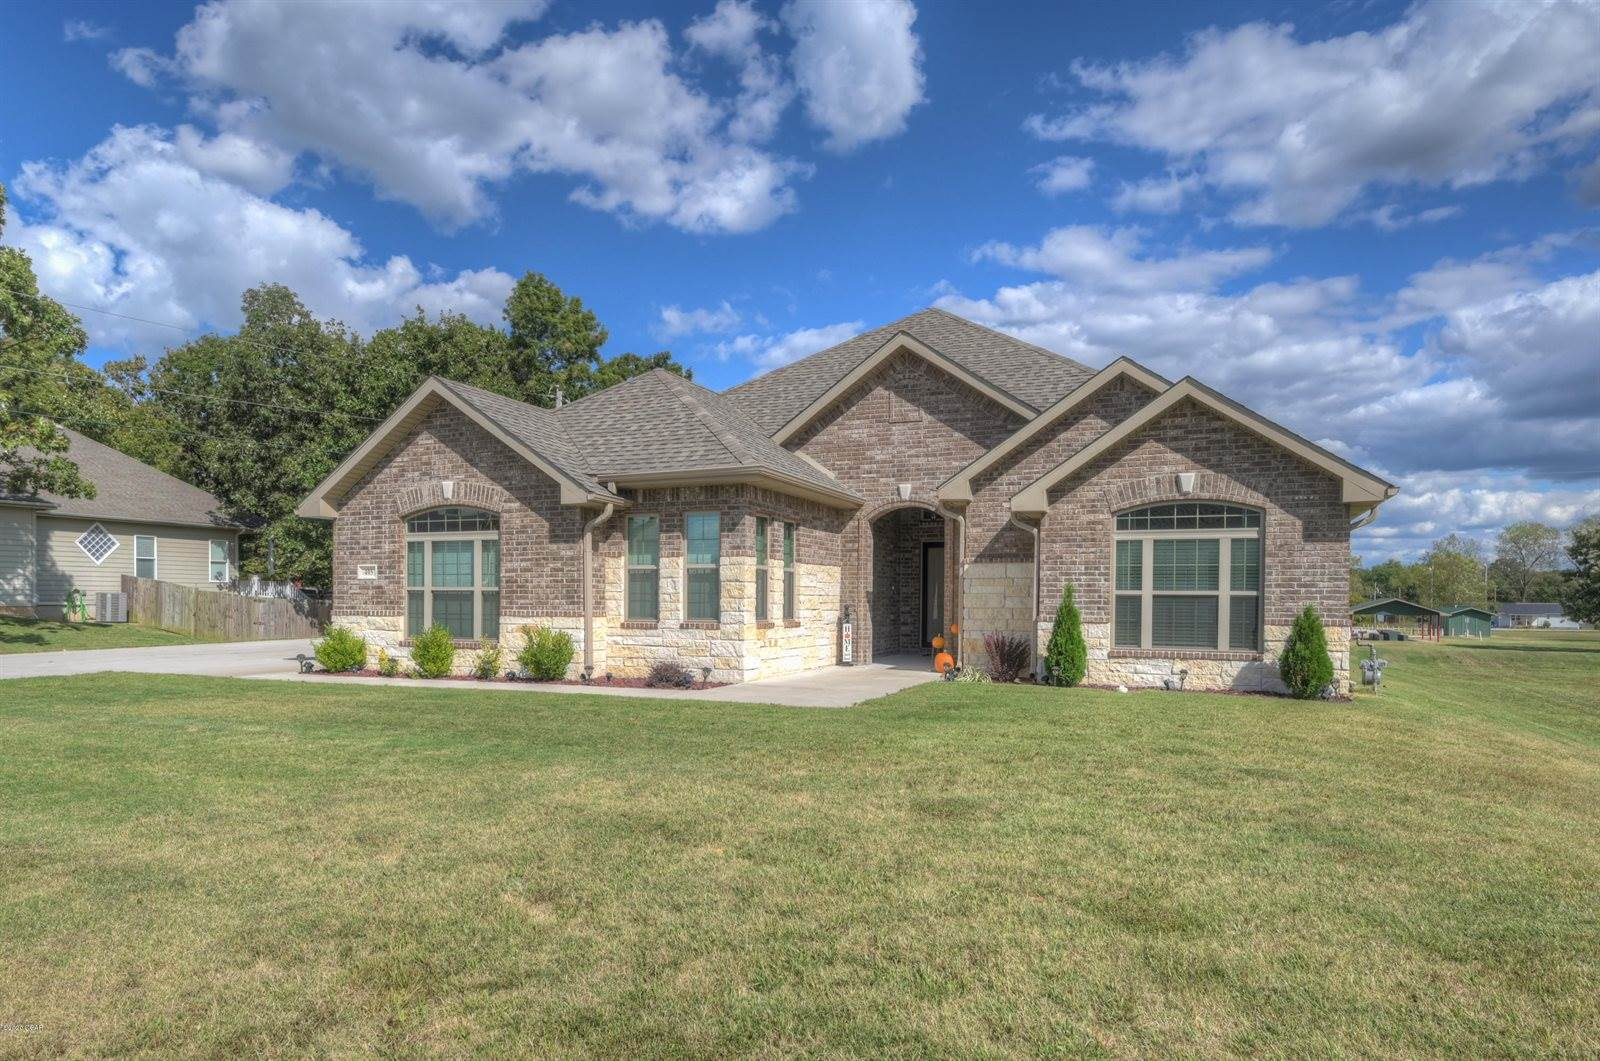 405 Anita Drive, Carl Junction, MO 64834